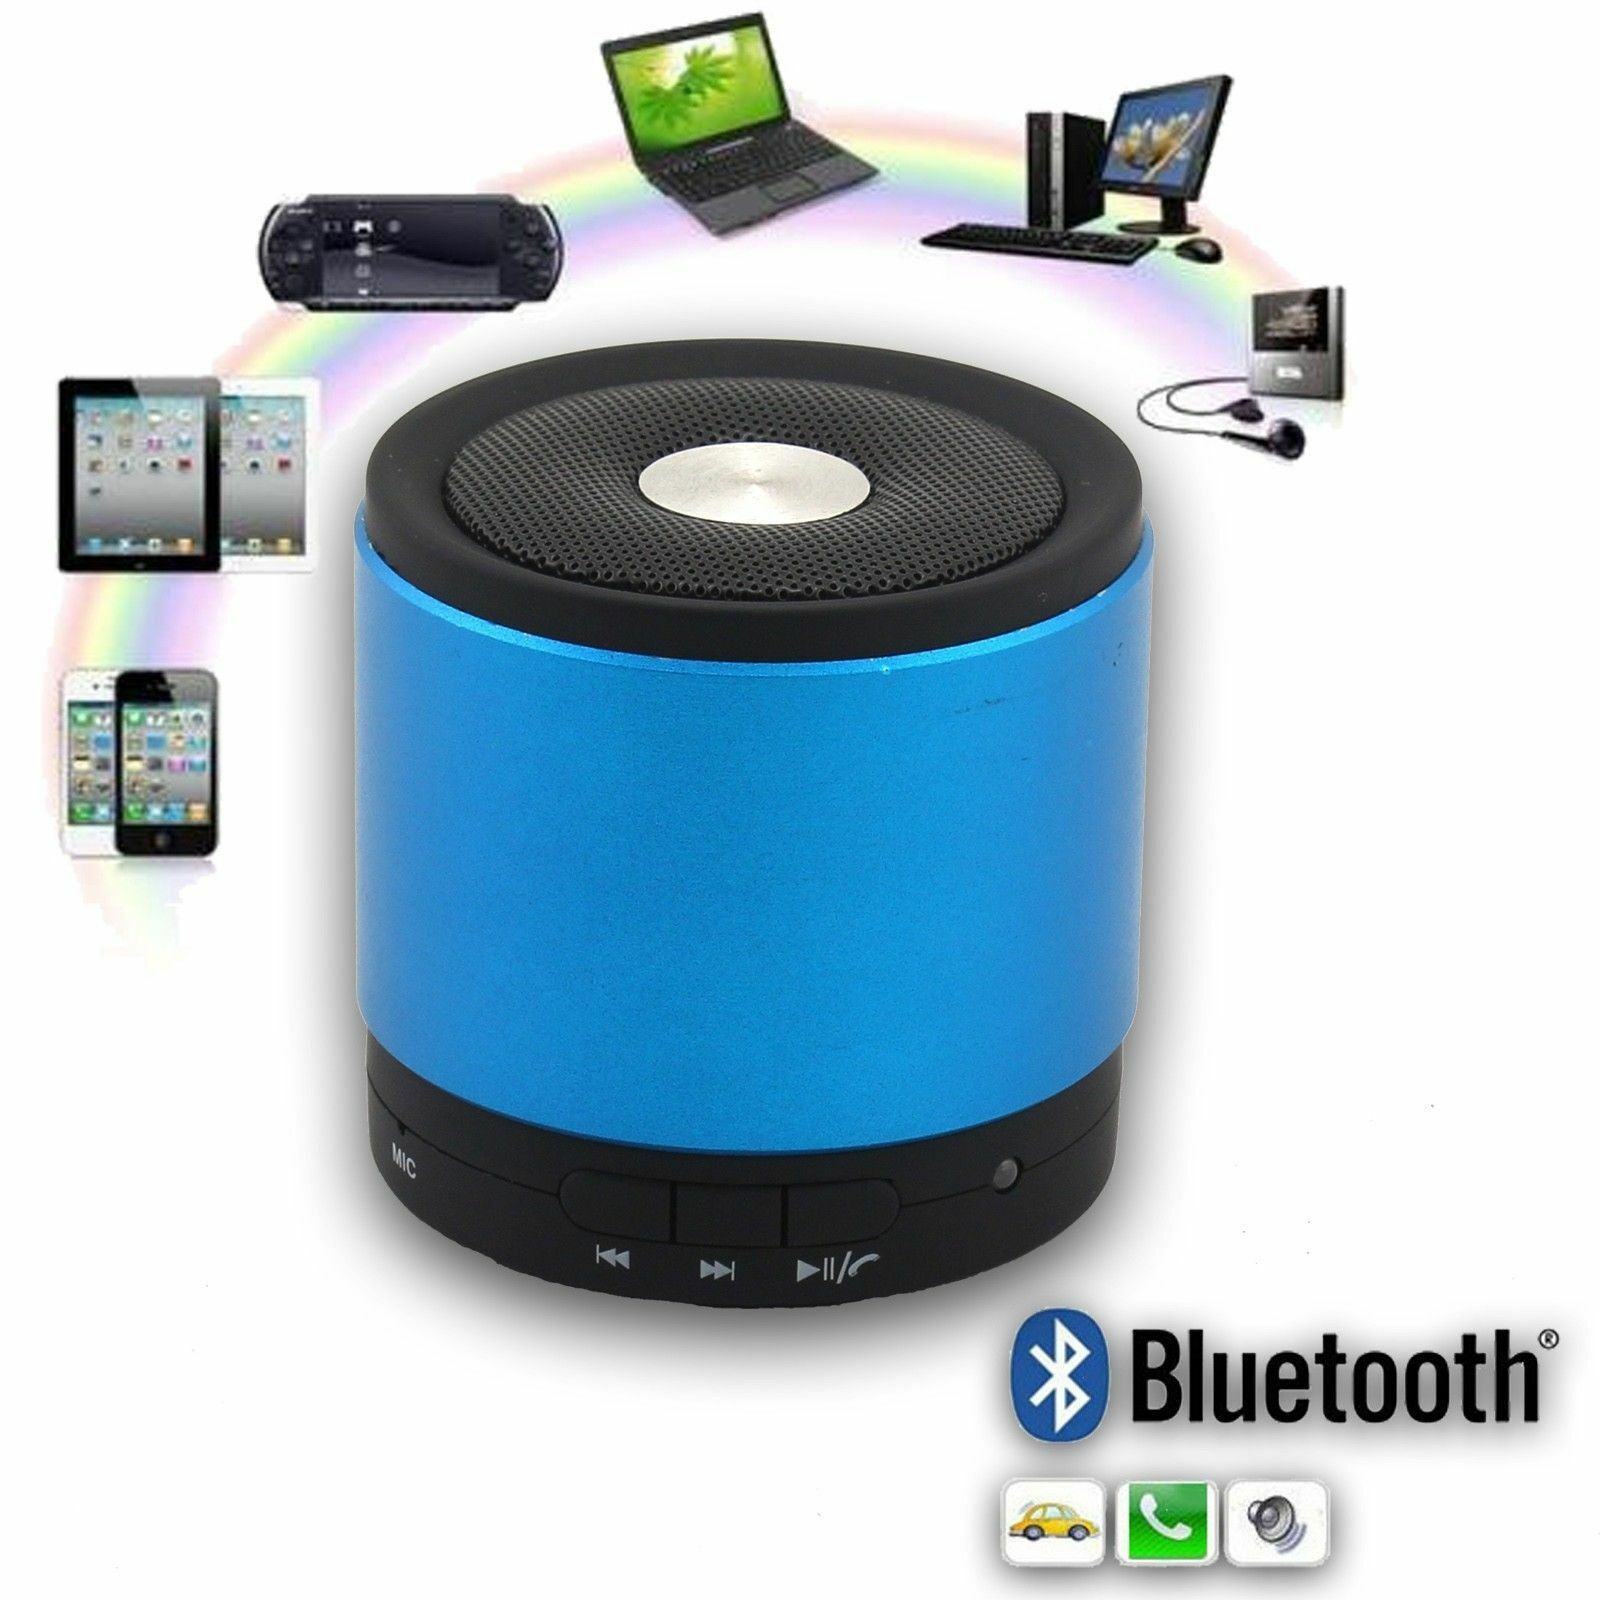 bluetooth headphones bluetooth speaker 2 in 1 advanced. Black Bedroom Furniture Sets. Home Design Ideas